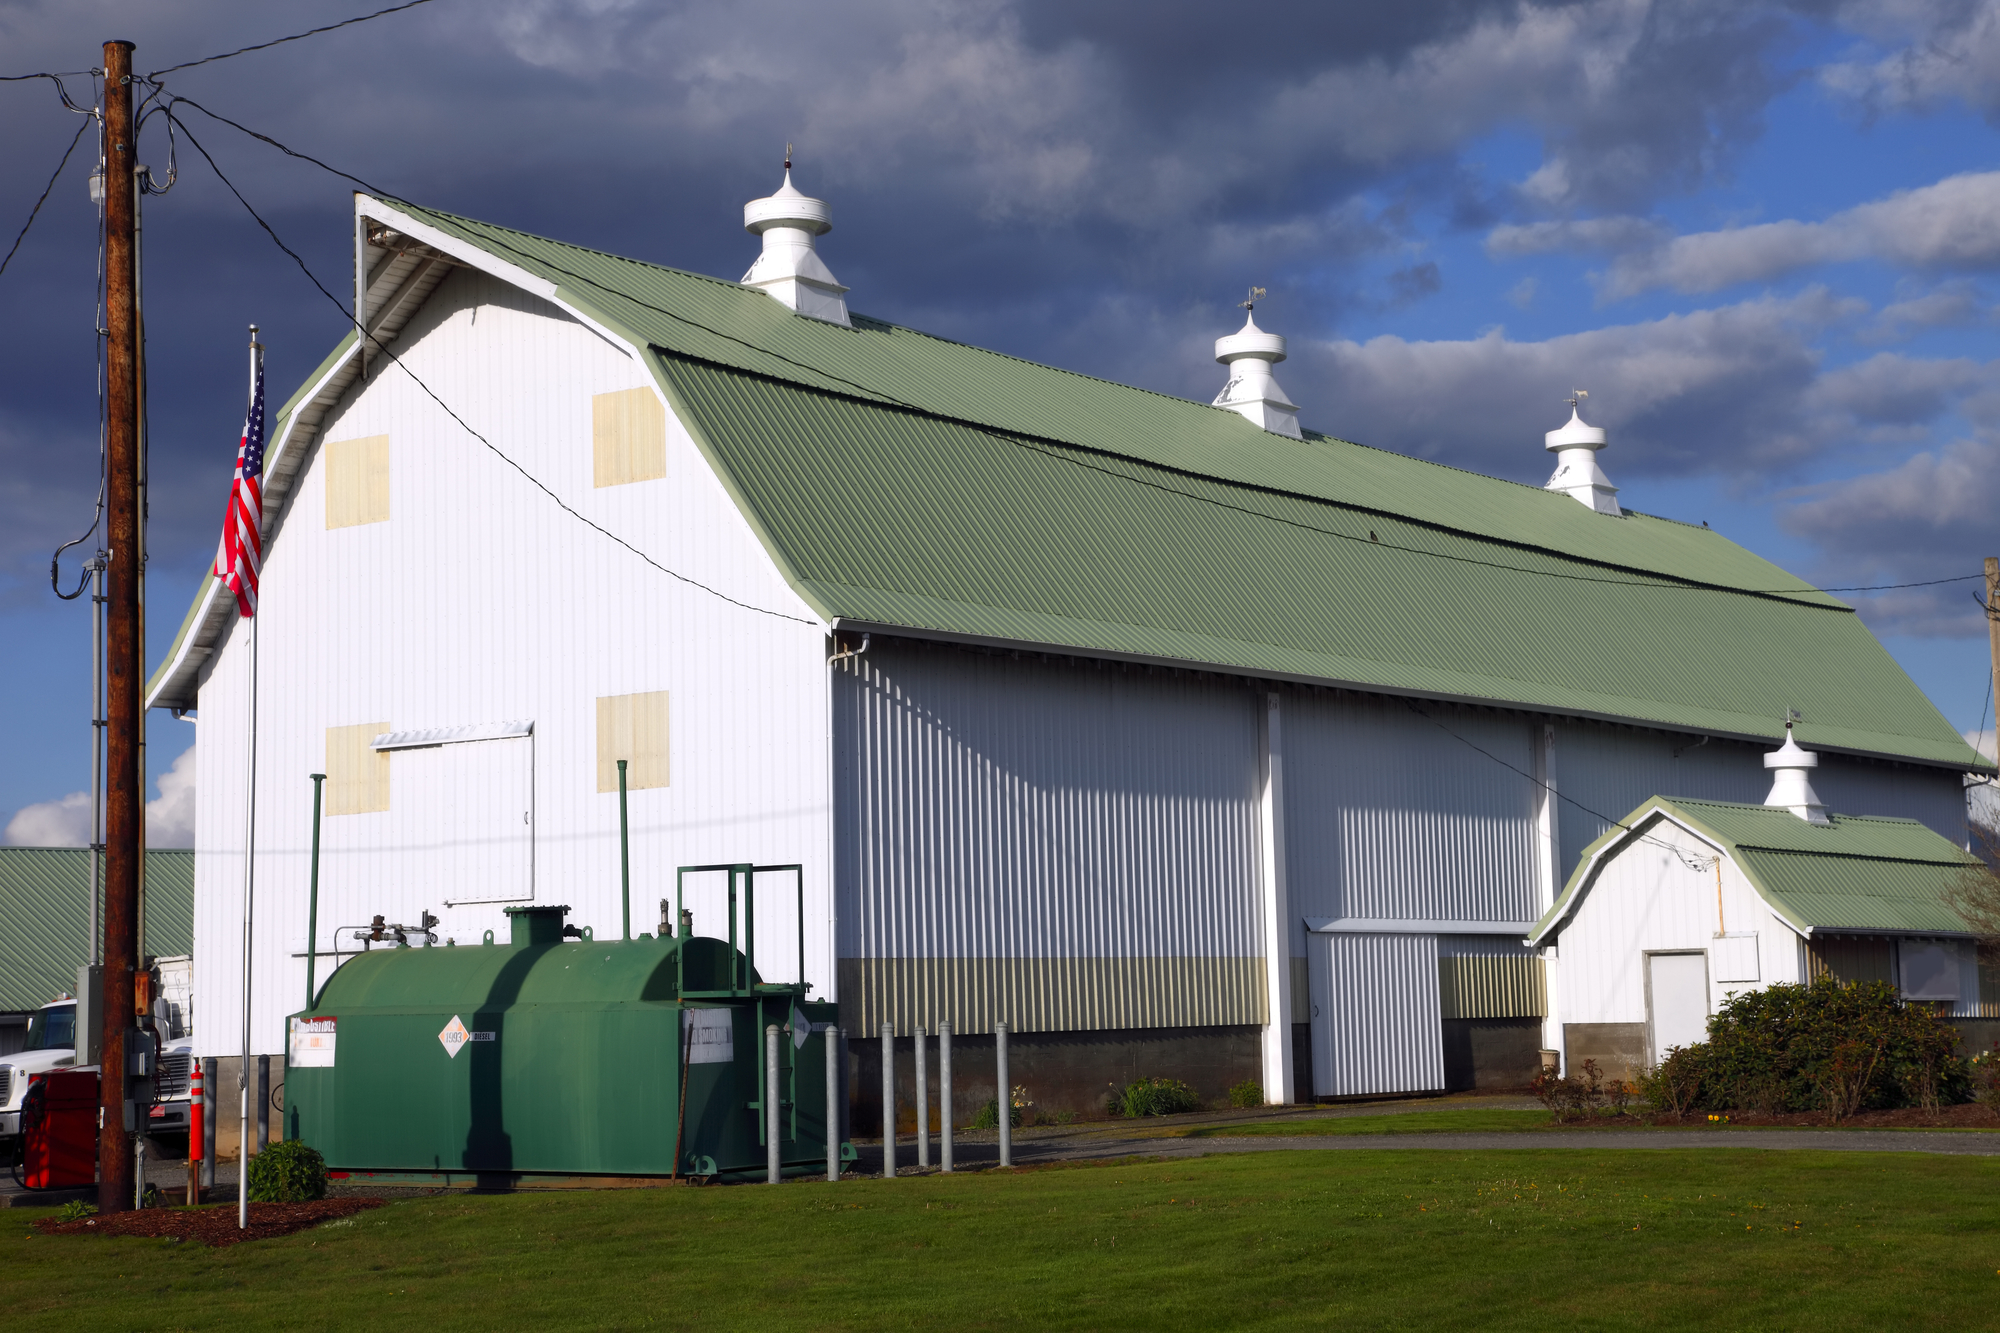 Pole Barns & Steel-Frame Buildings: What's the Difference